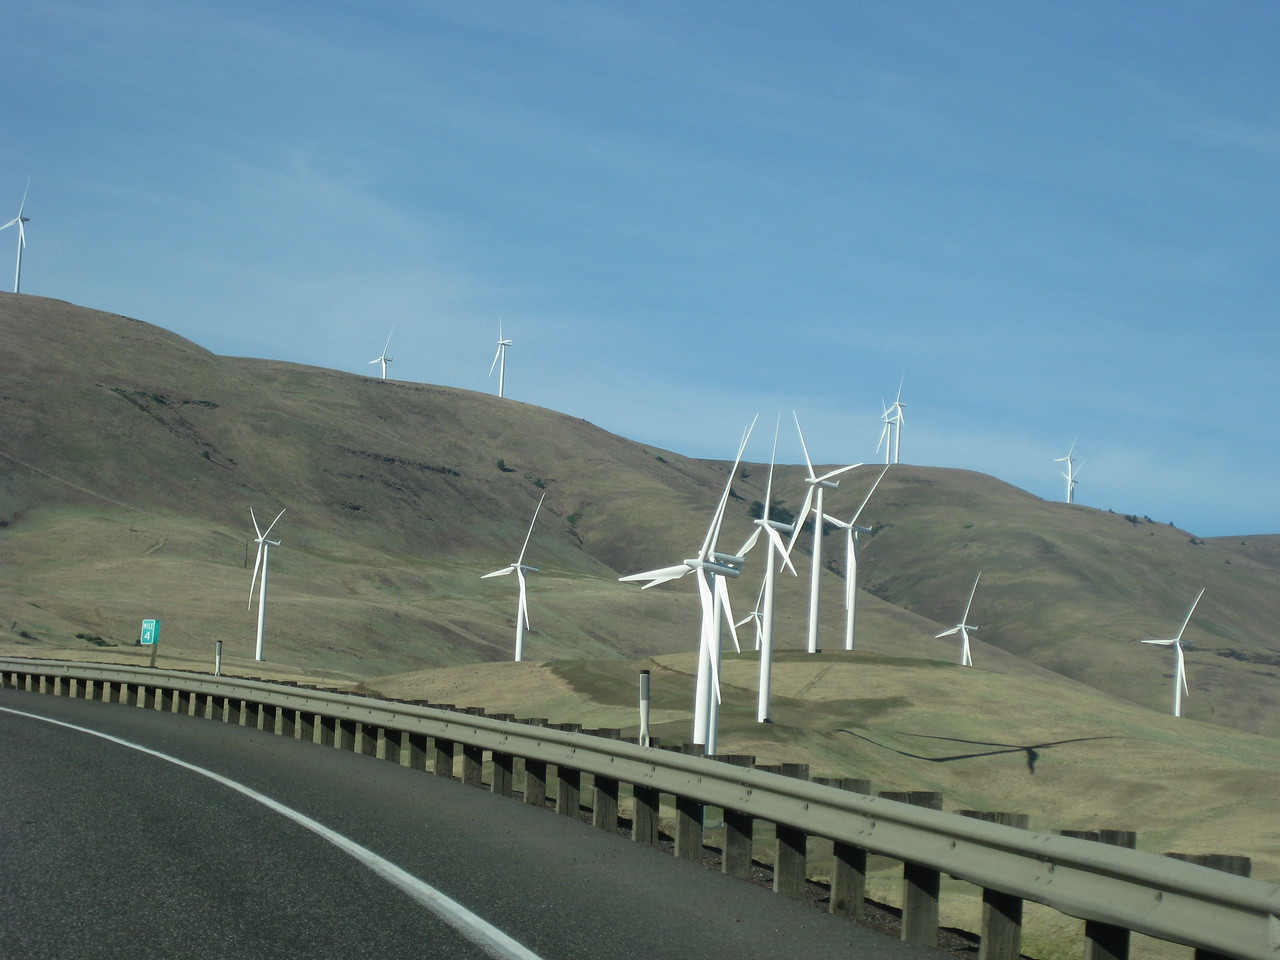 Wind farm on the Columbia River Gorge on the way to Grass Valley.